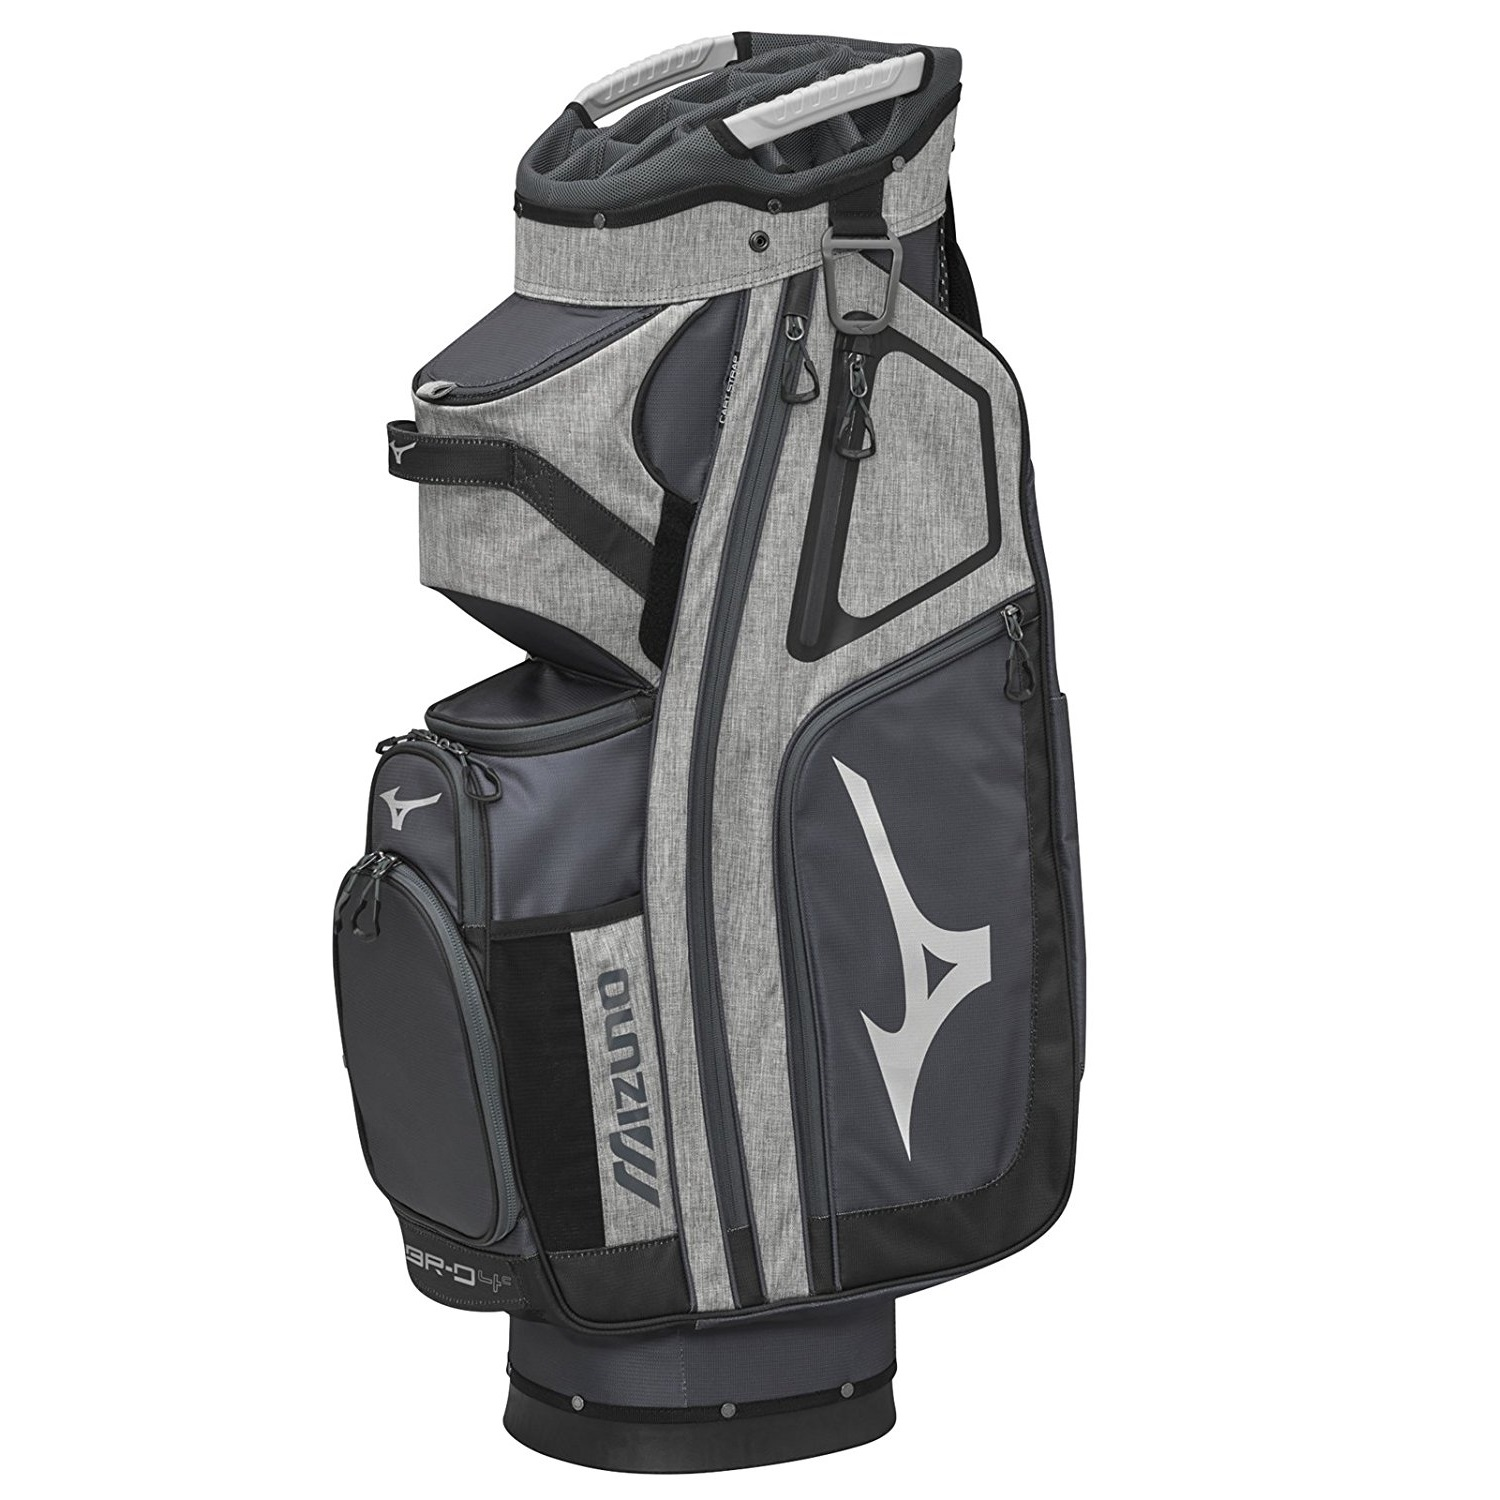 Mizuno BR-D4C Golf Cart Bag, Grey/Black